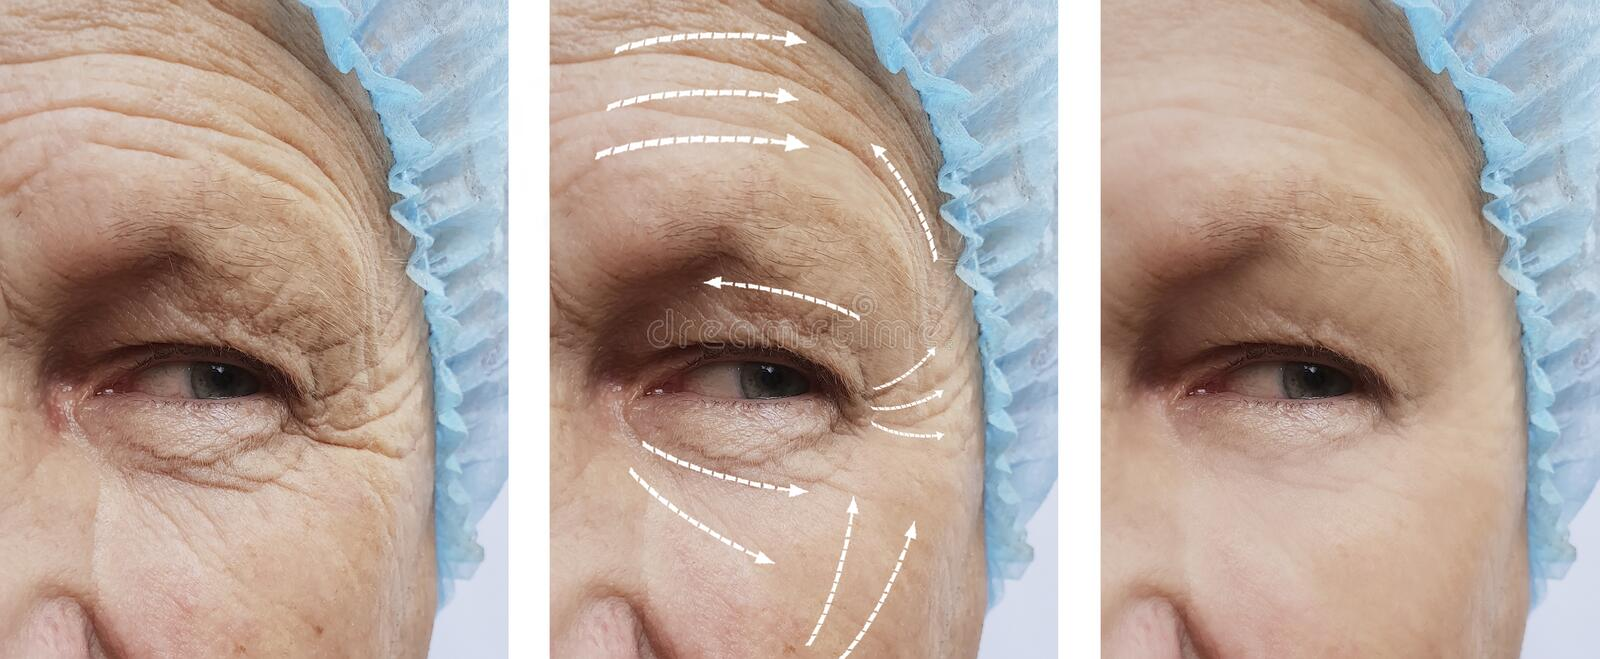 Old man with wrinkles removal on face results difference cosmetology before and after procedures arrow. Old man with wrinkles face before and after procedures royalty free stock image